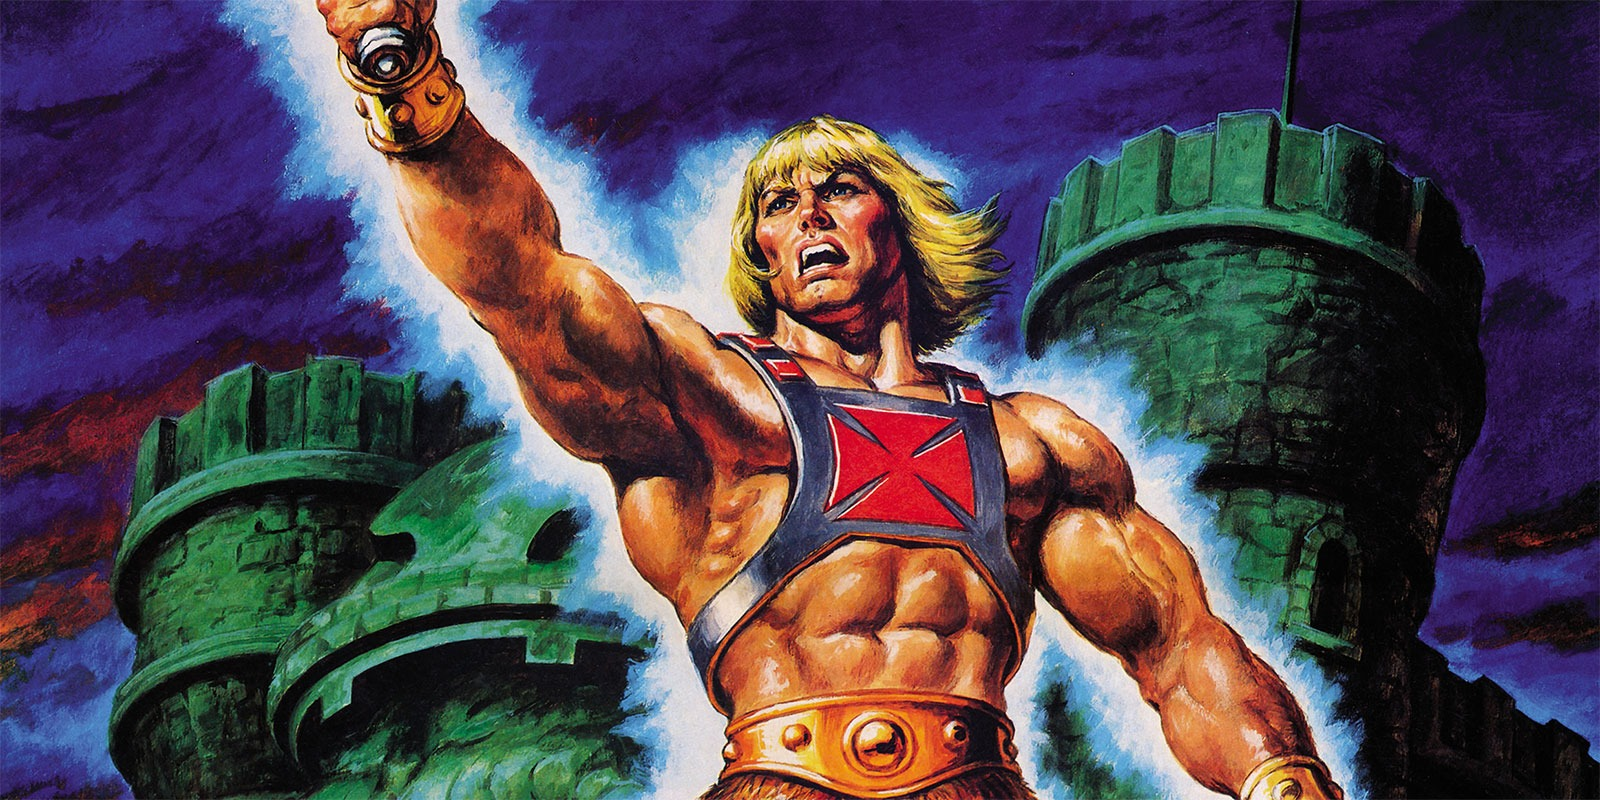 Toys on a Tuesday: A History of He-Man Both Good, Bad and Meme Worthy